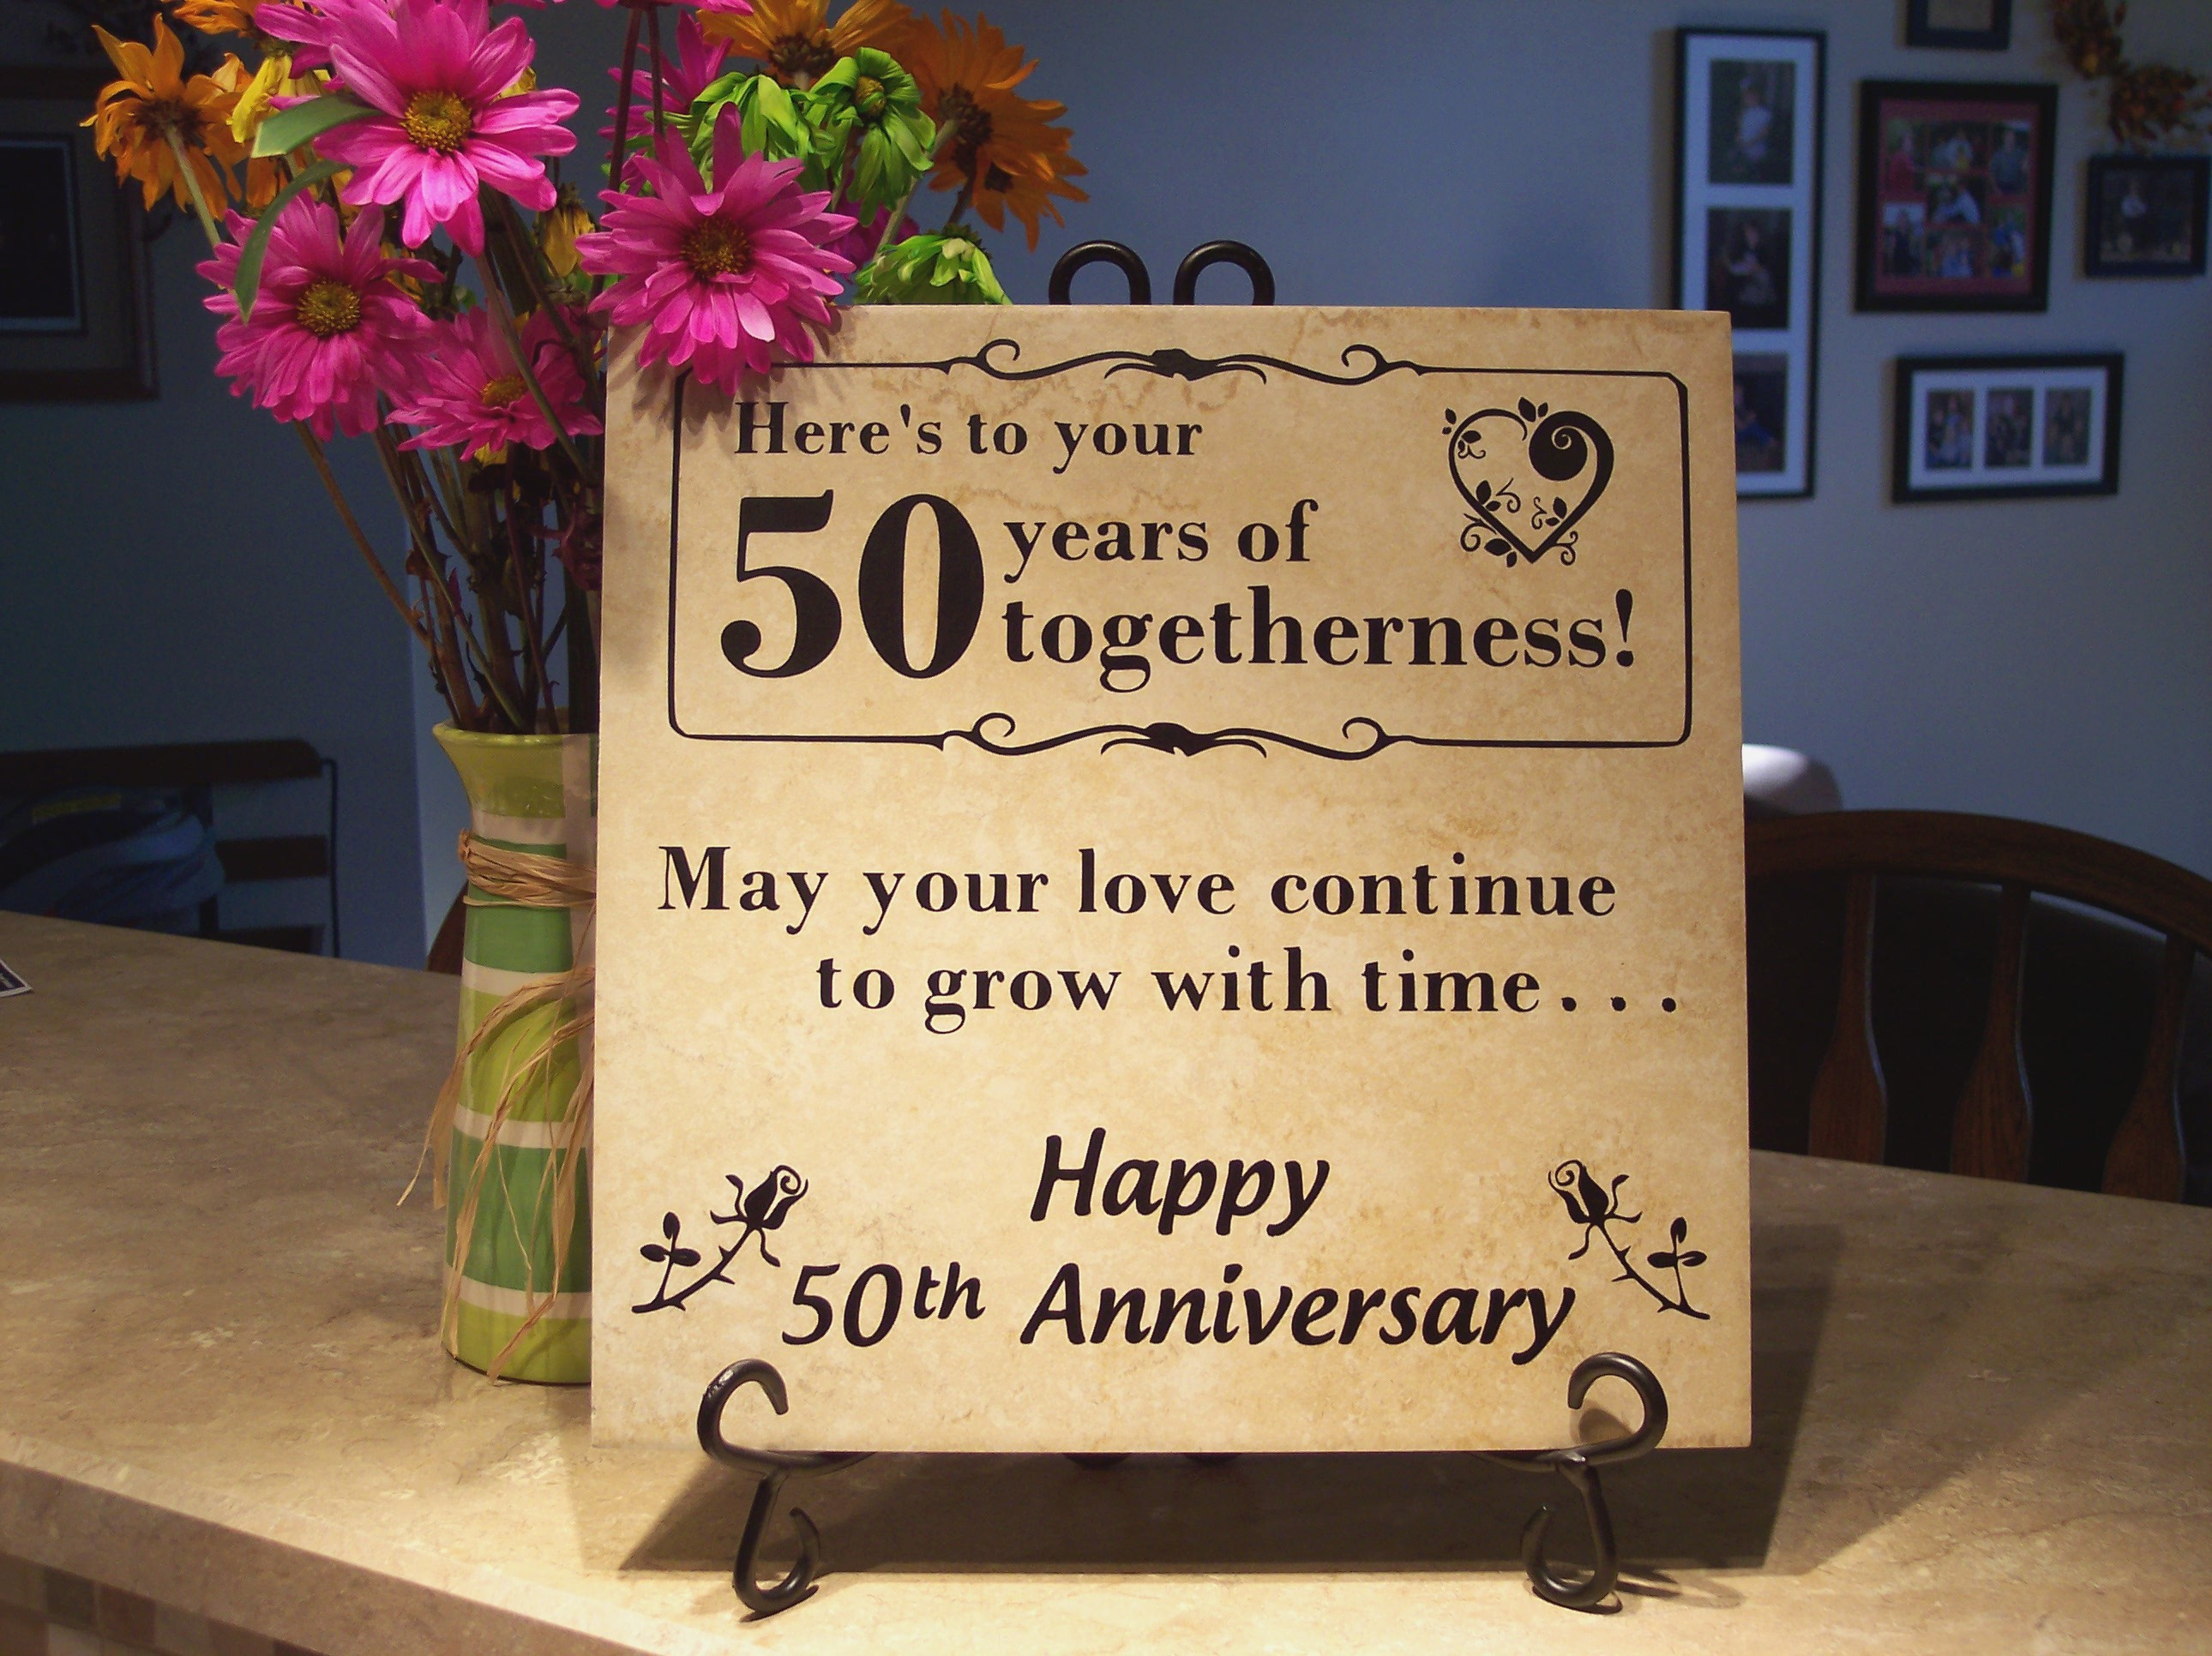 50th Wedding Anniversary Wishes For Friend Beautiful - Happy 50th Anniversary Quote - HD Wallpaper